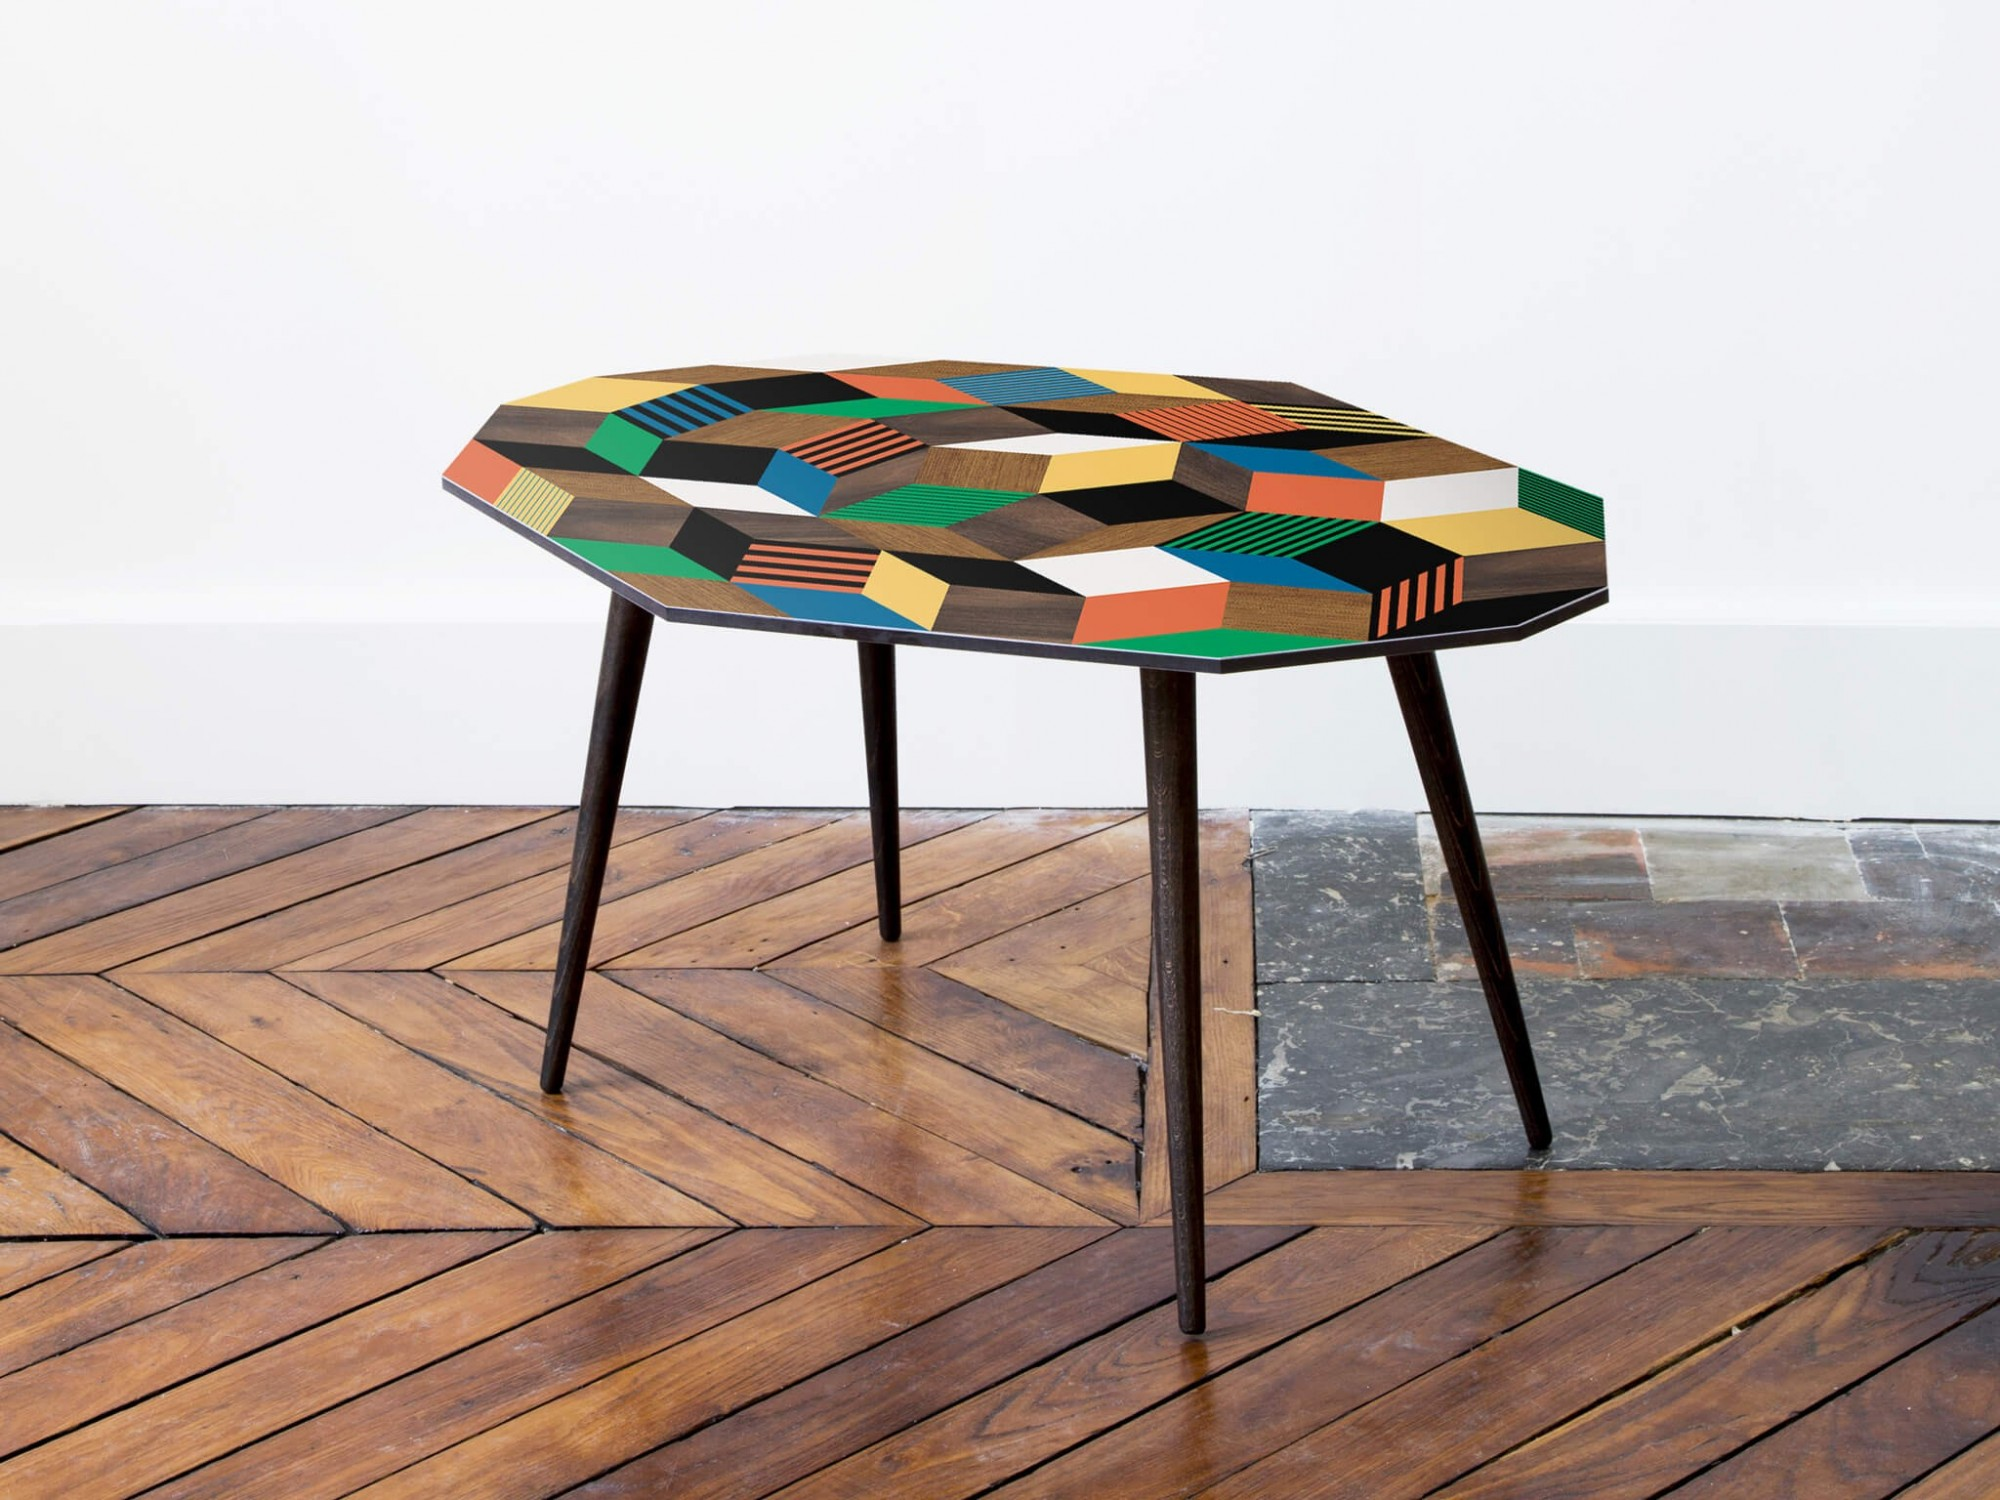 Table basse au motif géométrique Penrose Crazy Wood, photographie à la Galerie Joseph, design IchetKar, edition bazartherapy